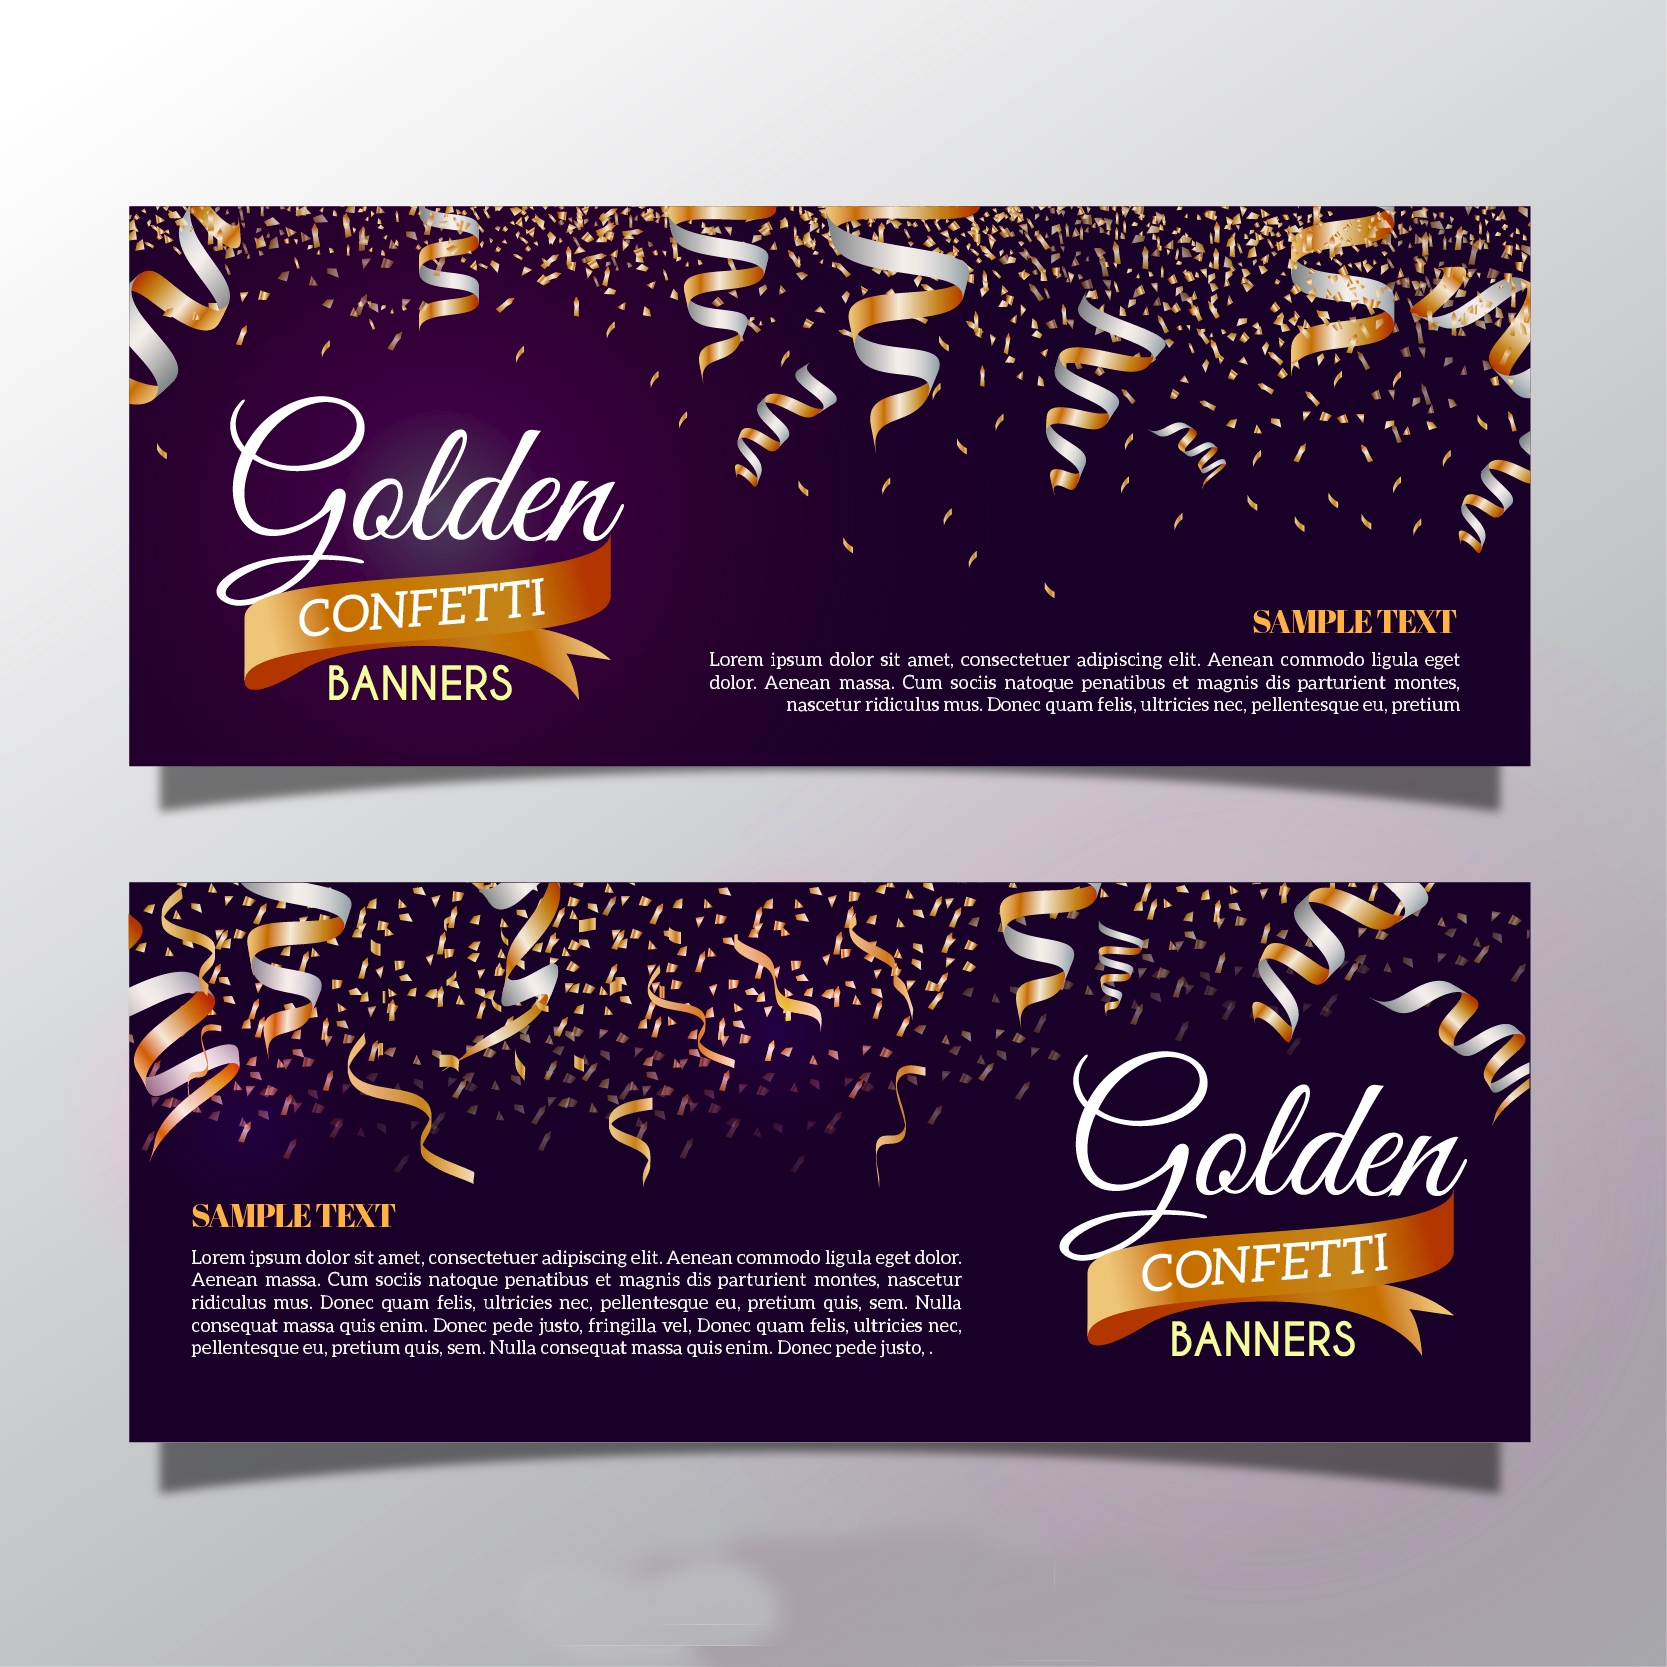 banners of golden confetti